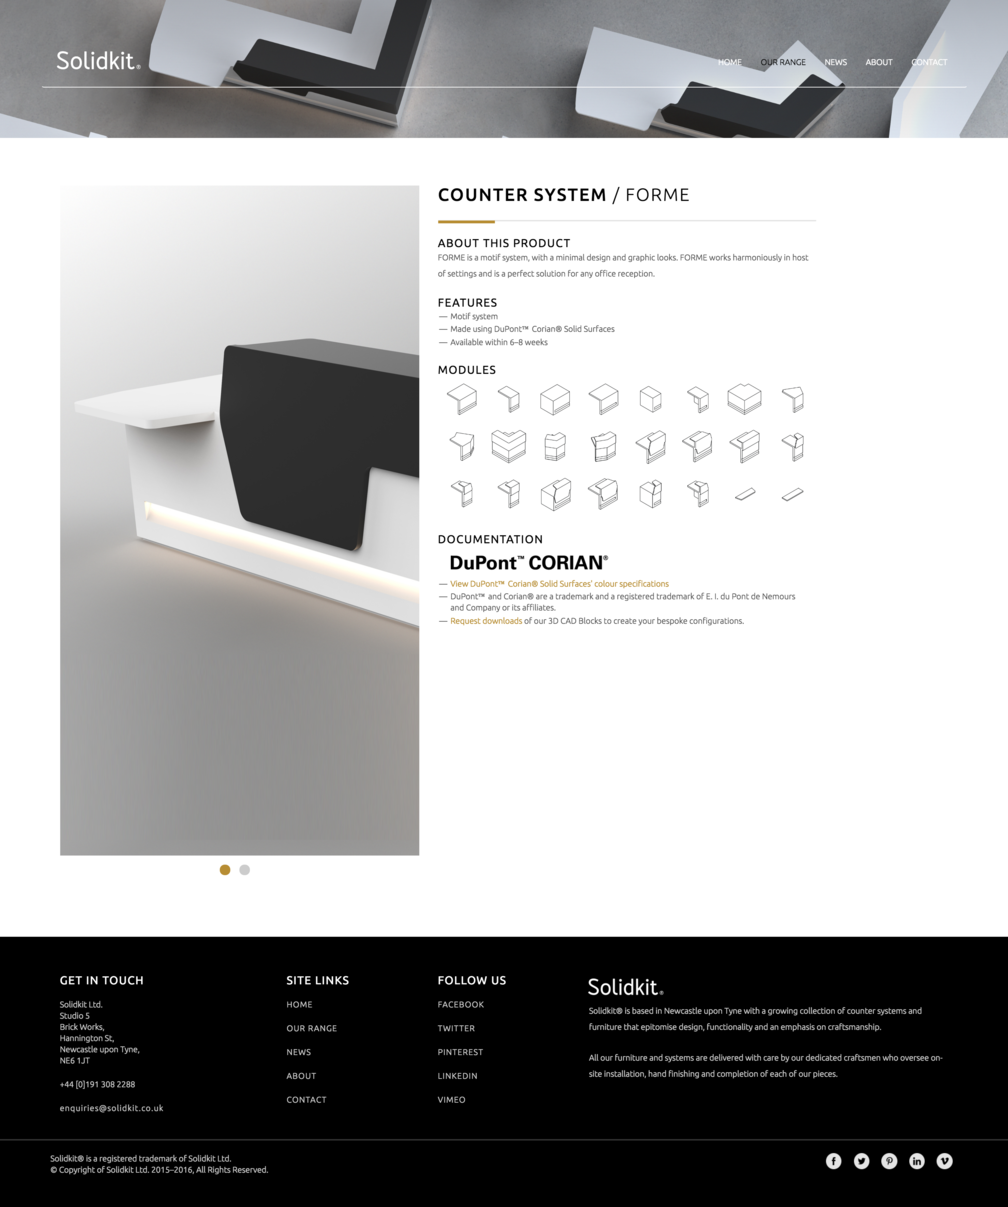 Product page design for Solidkit